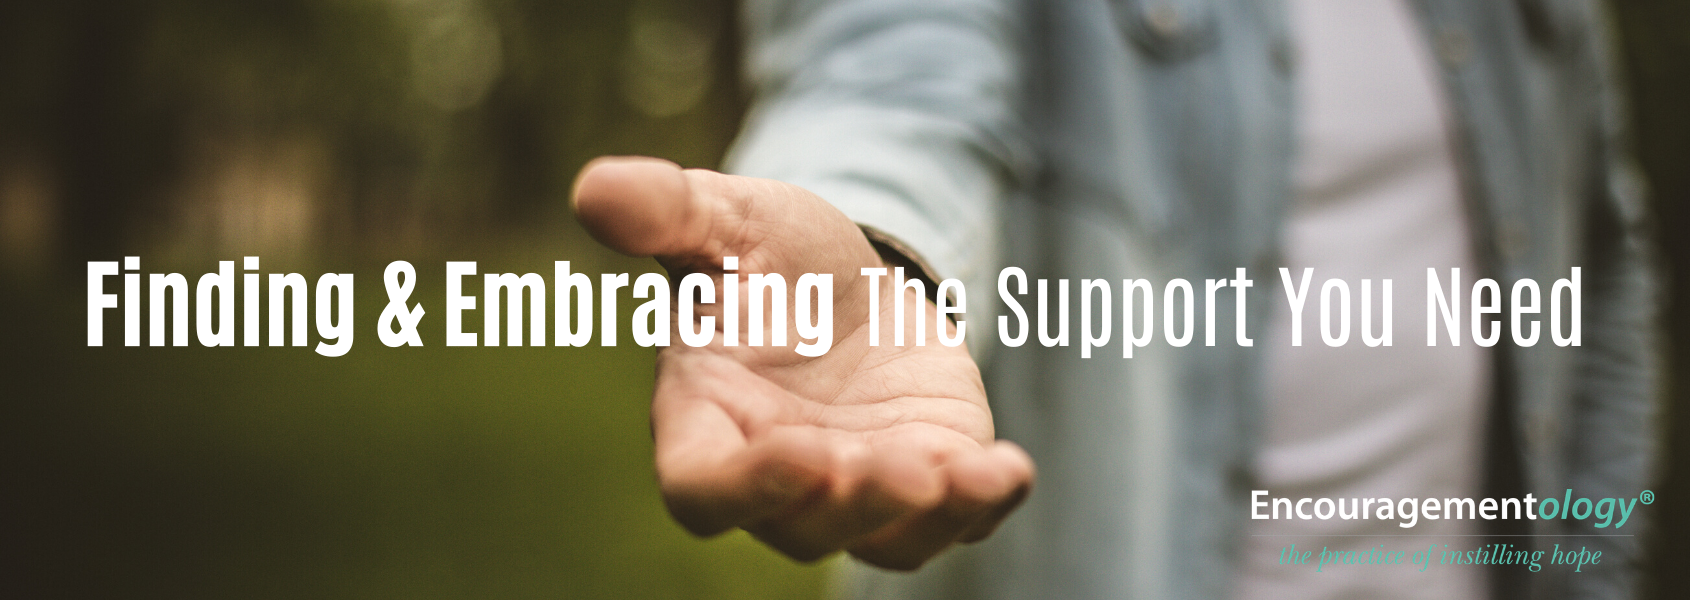 Reaching out a hand for support